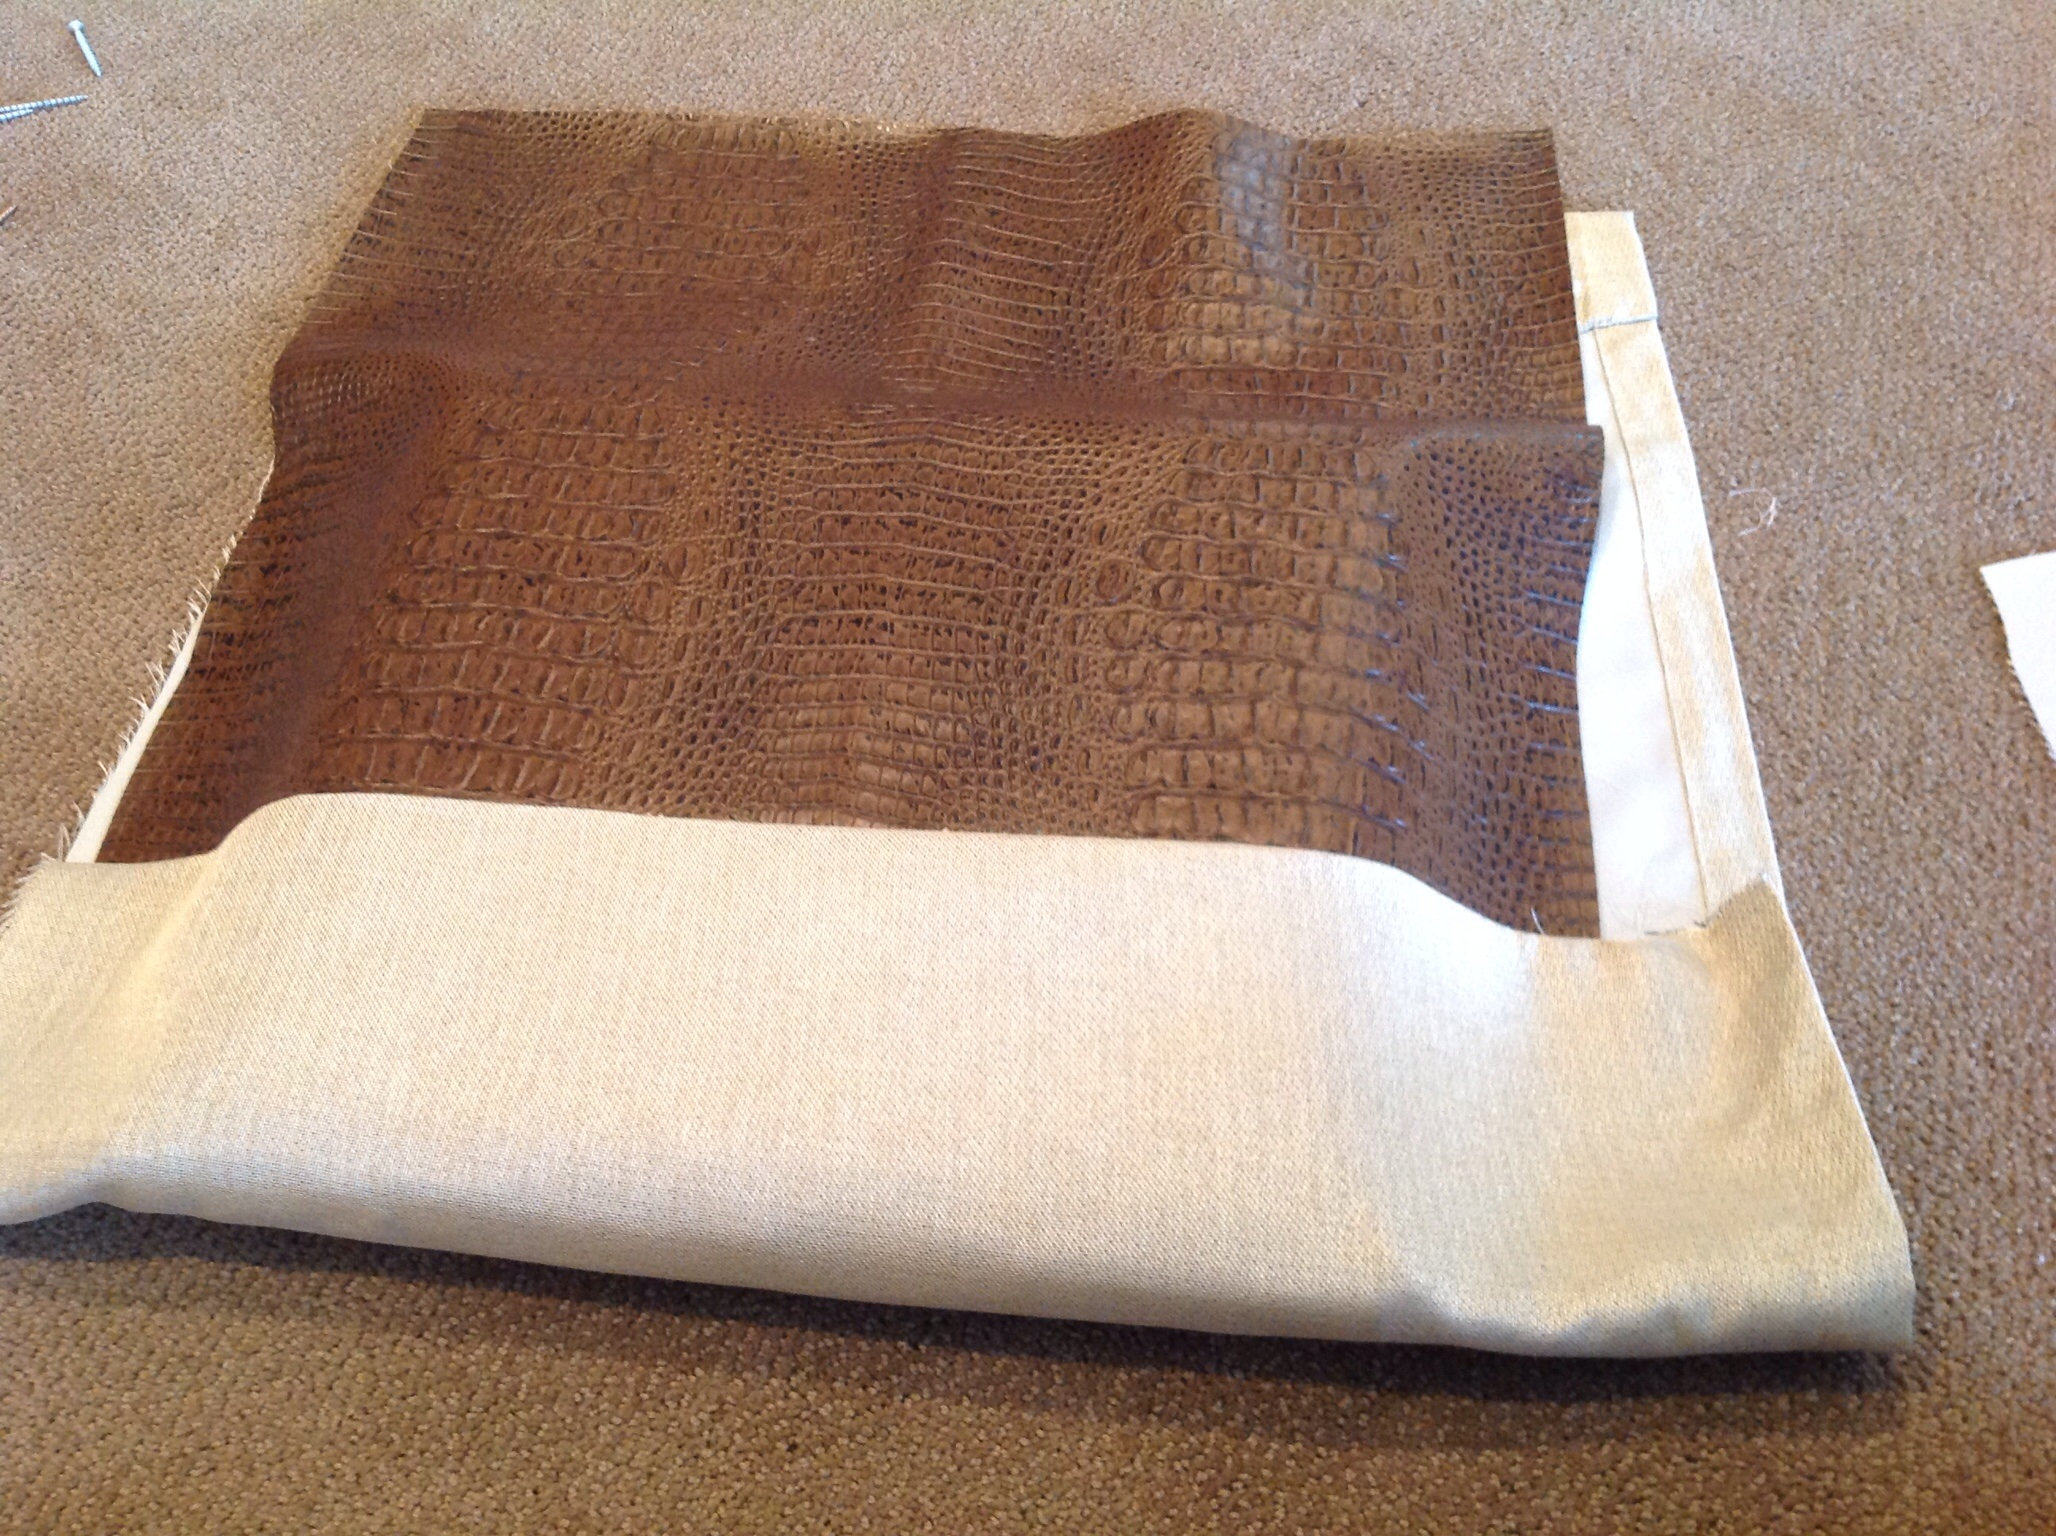 Determine how much of each fabric you want to use. I decided on a 2/3 leather 1/3 fabric ratio.